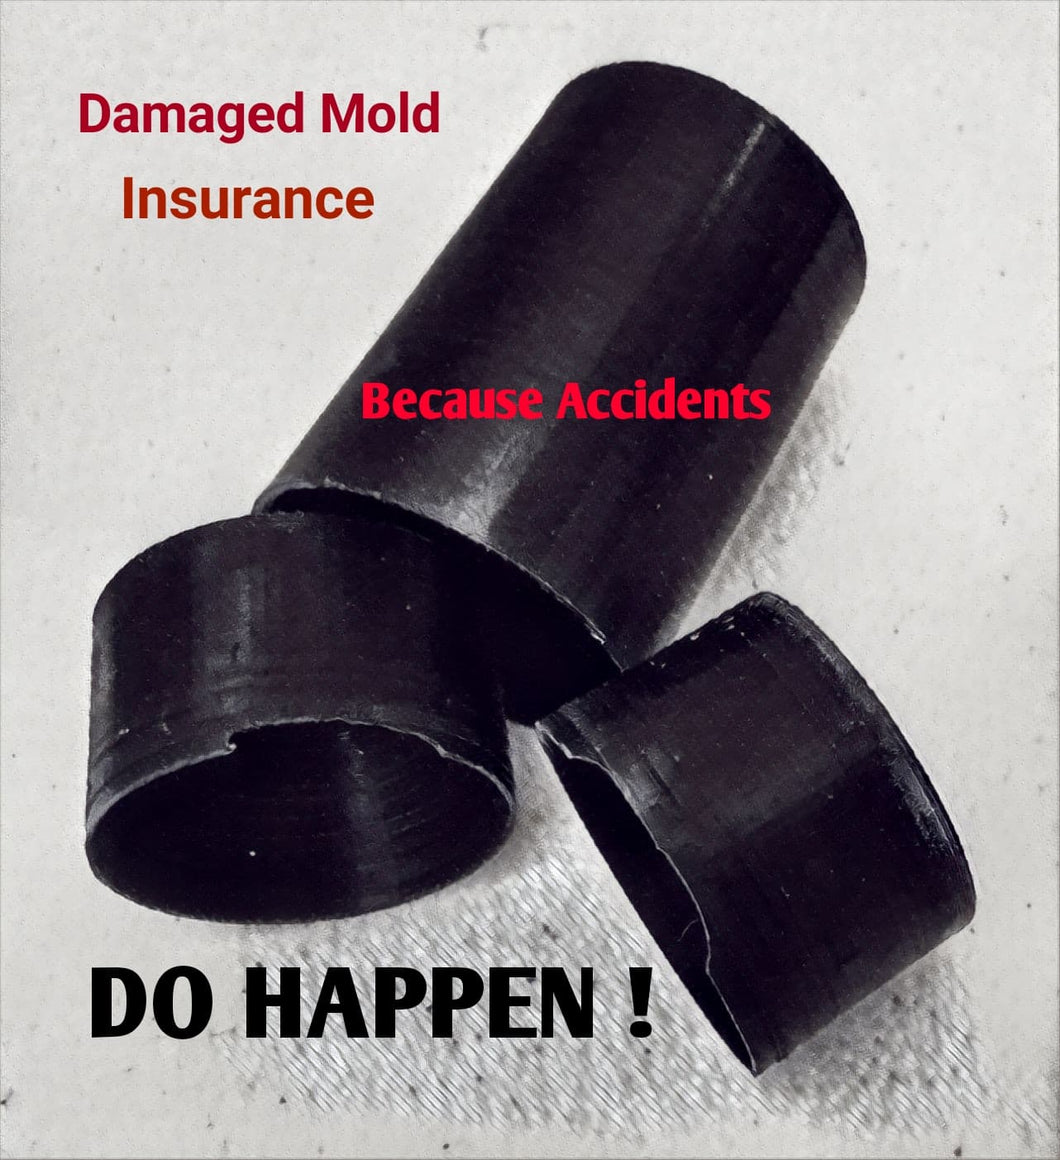 6 Month - Damaged Mold Insurance Policy